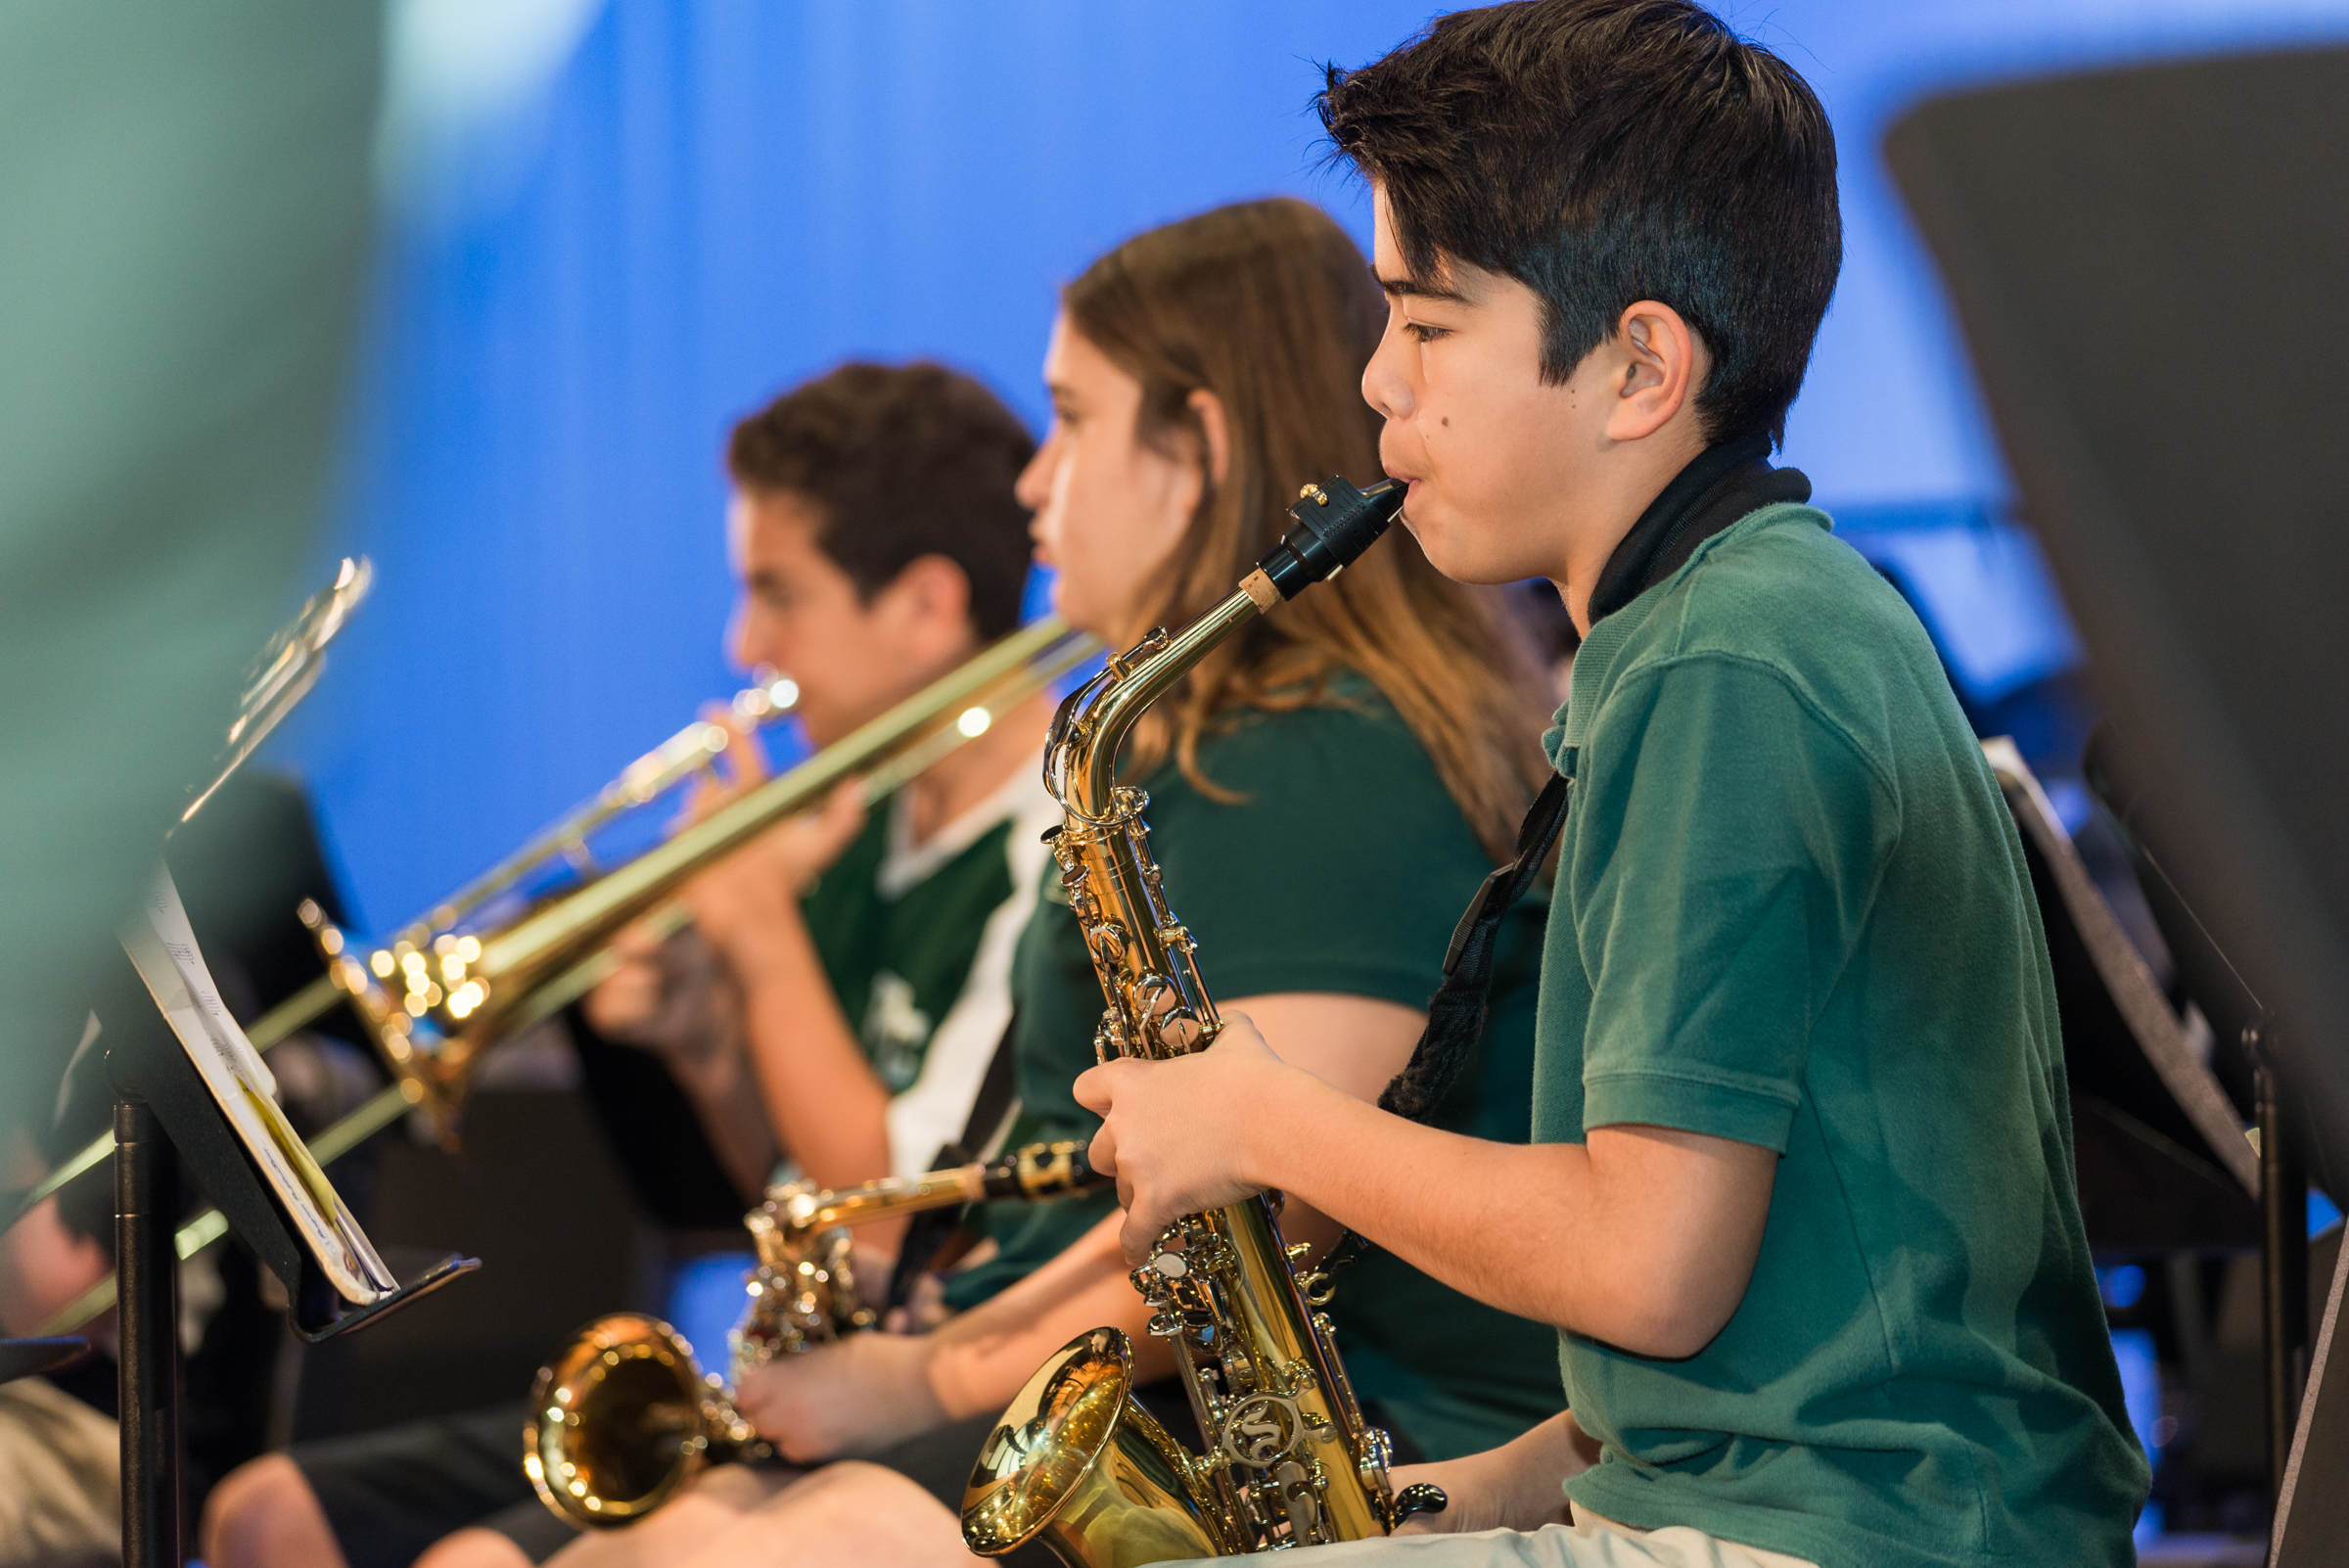 middle-school-students-in-the-band